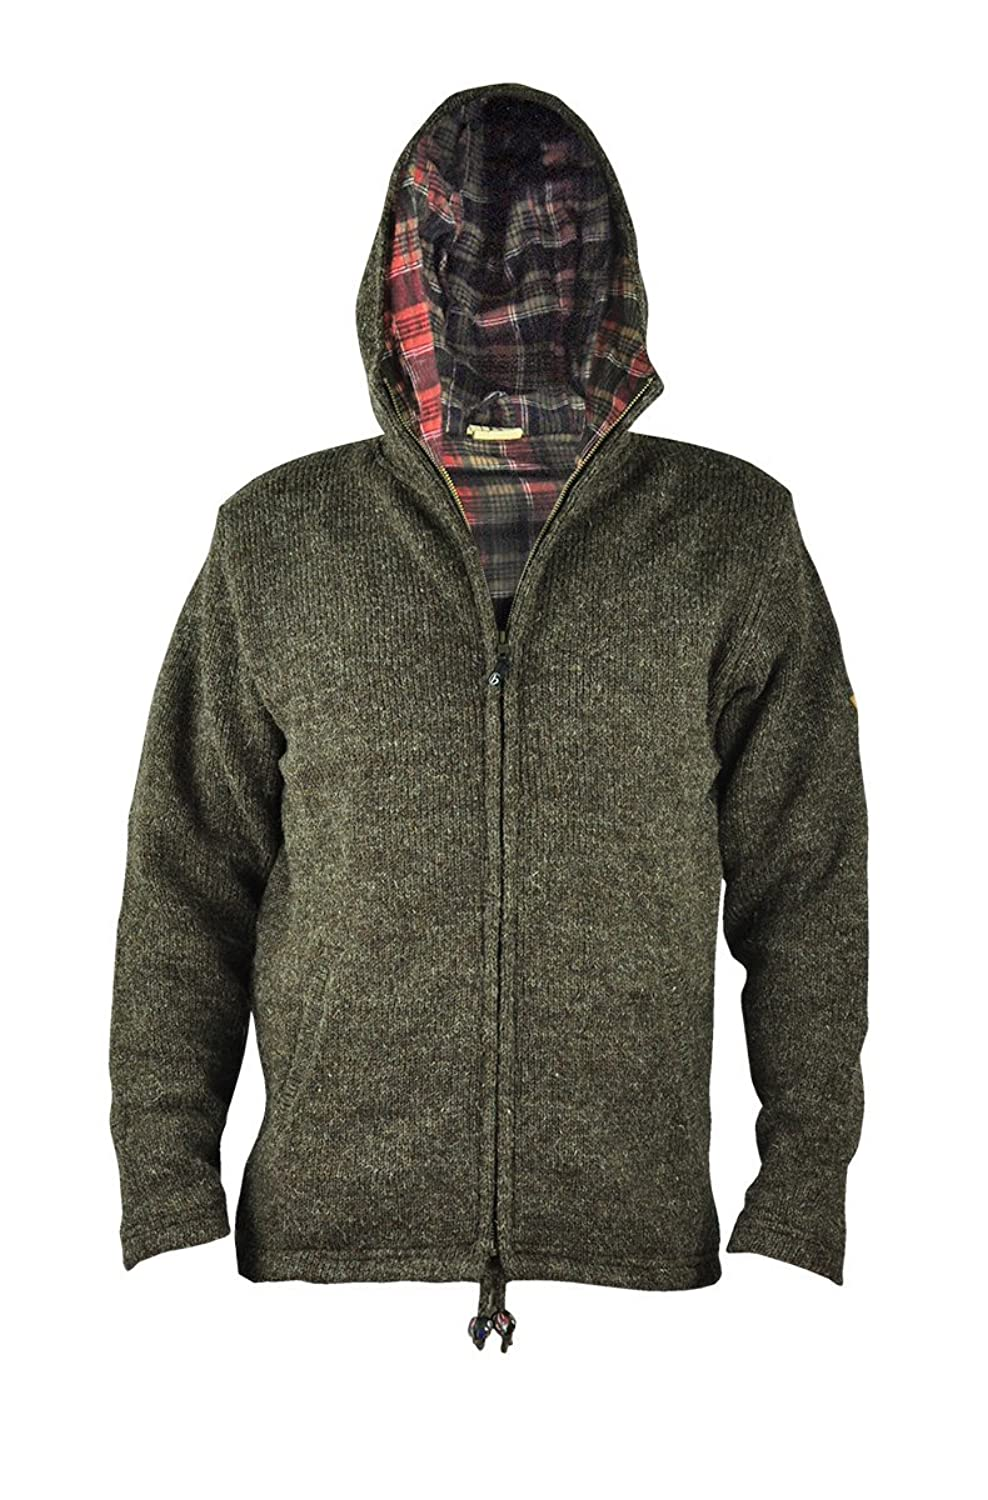 virblatt Men's lined wool jacket in sizes S, M, L, XL wool sweater Hoodie 100 % natural wool - Everest